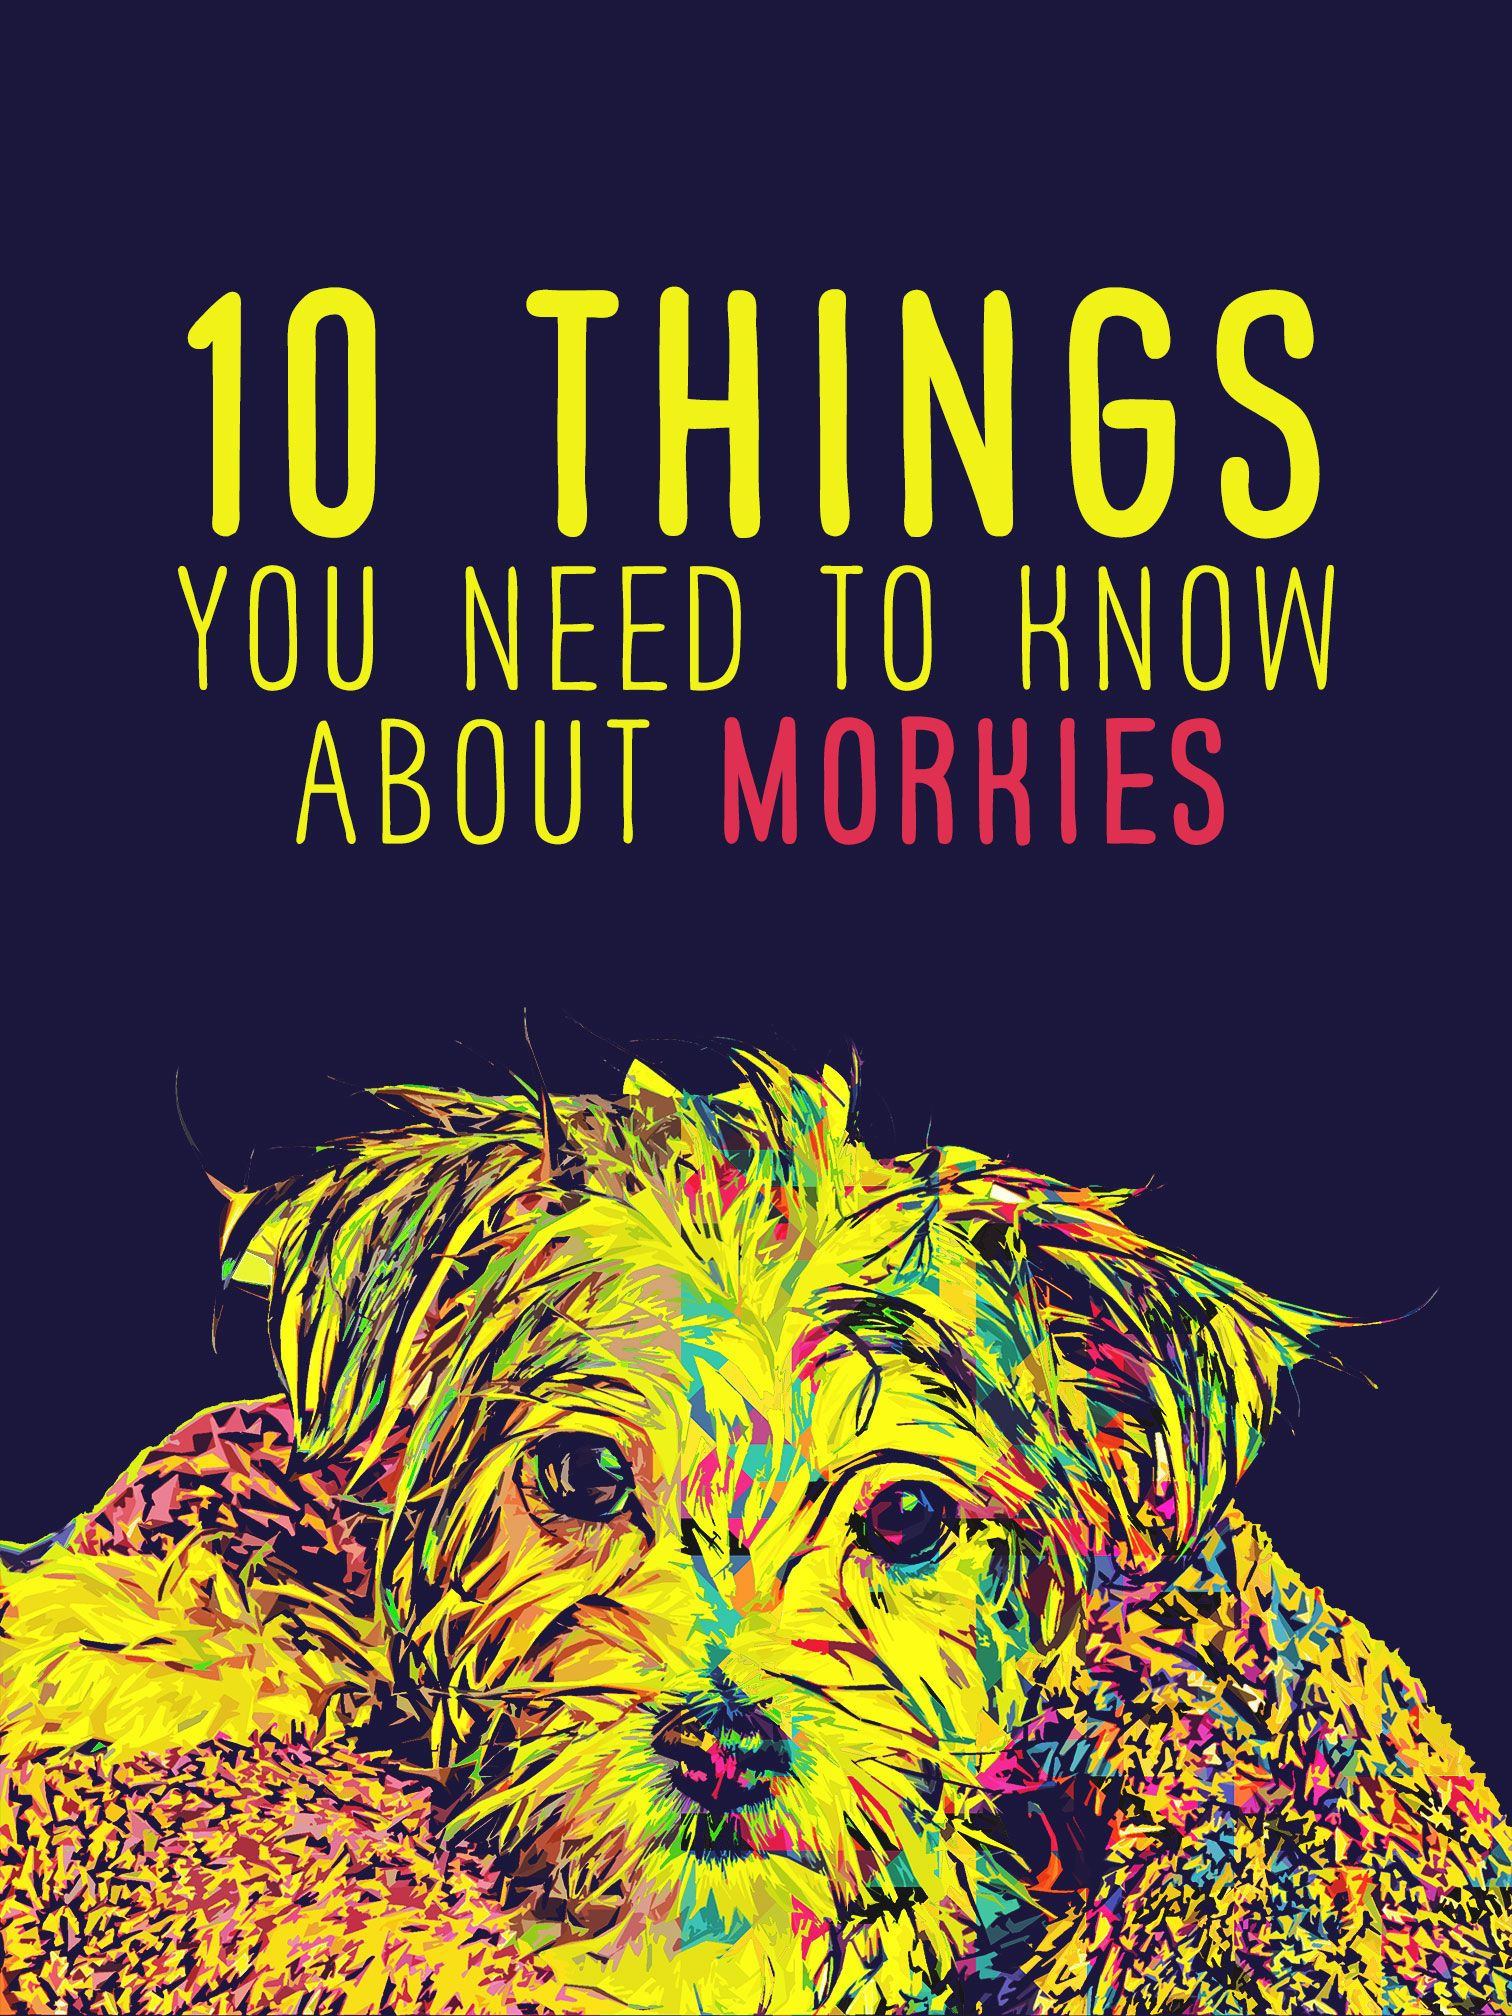 10 things to know about Morkie dogs | The Morkie Guide